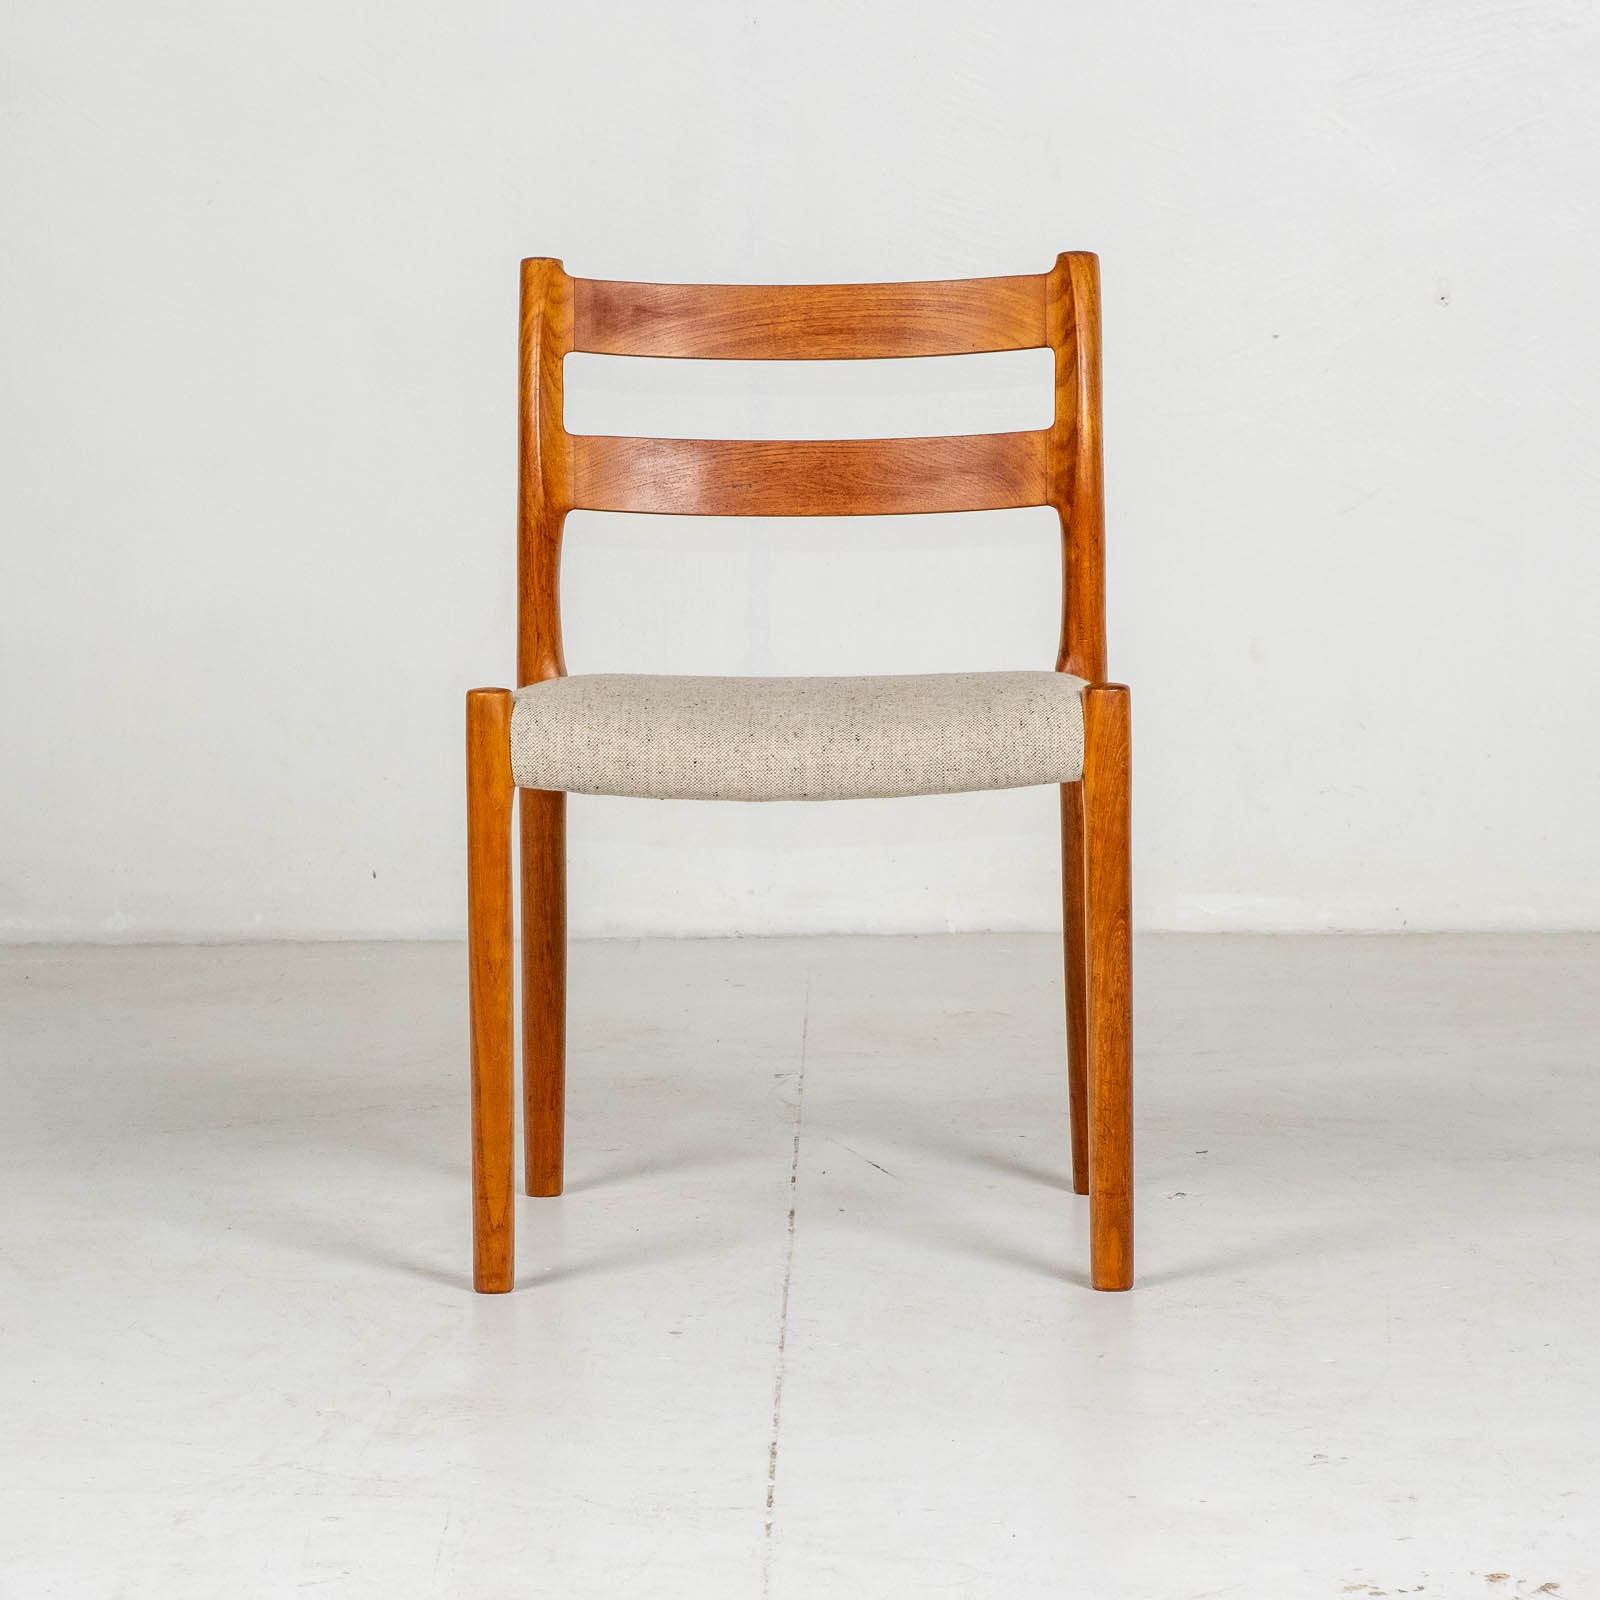 Set Of Four Ladder Back Dining Chairs By Niels Moller In Teak, 1960s, Denmark6